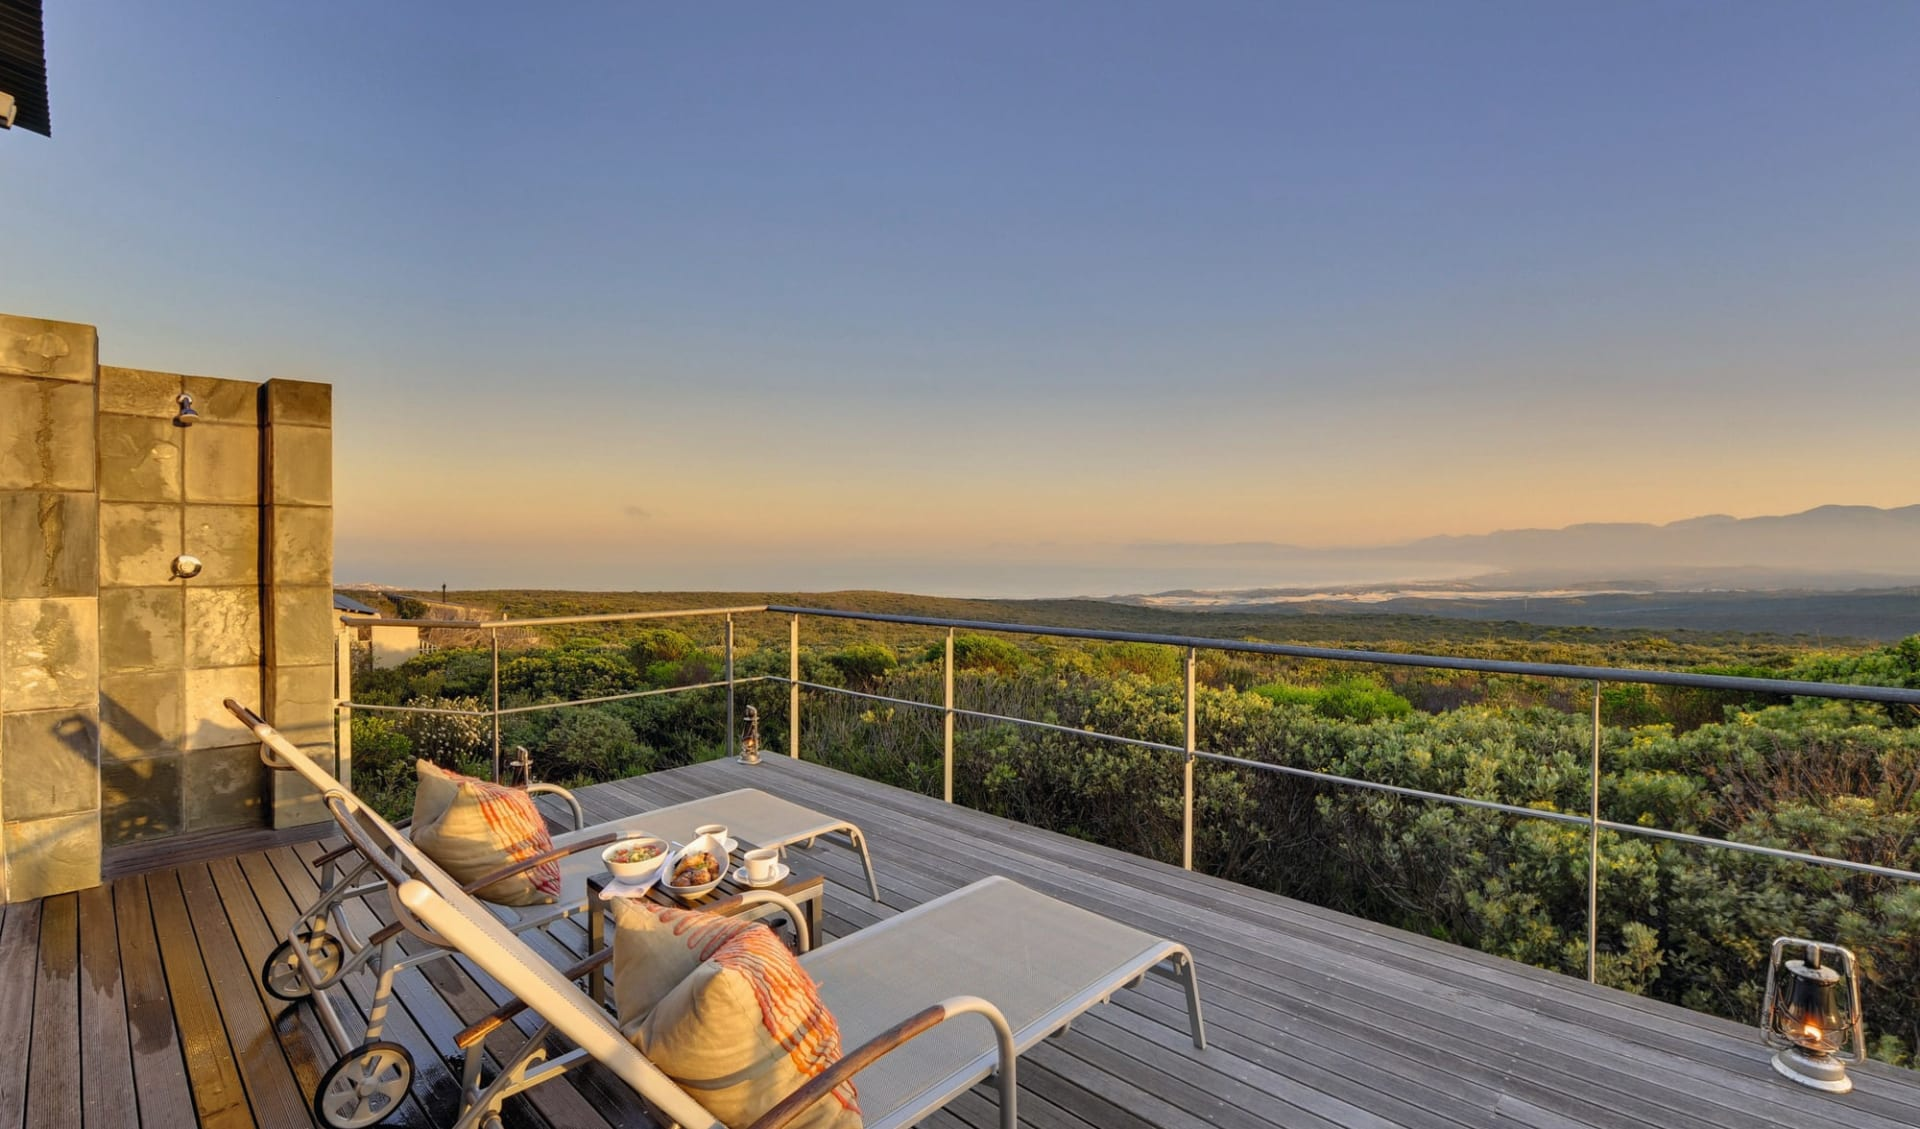 South Africa Exclusive 20 Tage ab Johannesburg: Exterior Grootbos Private Nature Reserve Terrasse der Forest Lodge mit Liegestühle